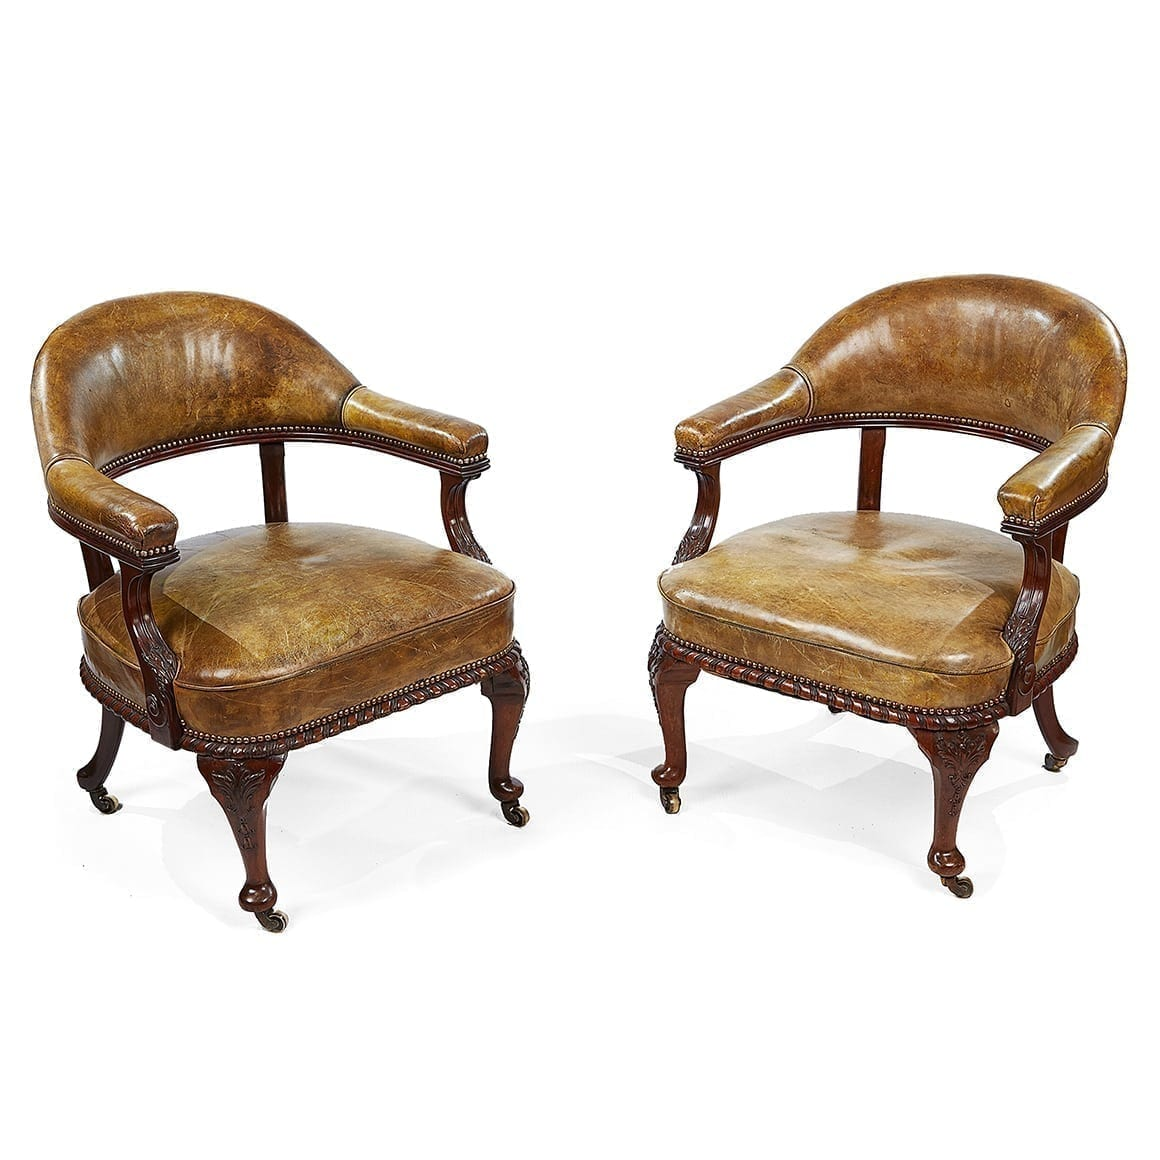 3097 Pair Of 19th Century Mahogany Desk Chairs By Morrison